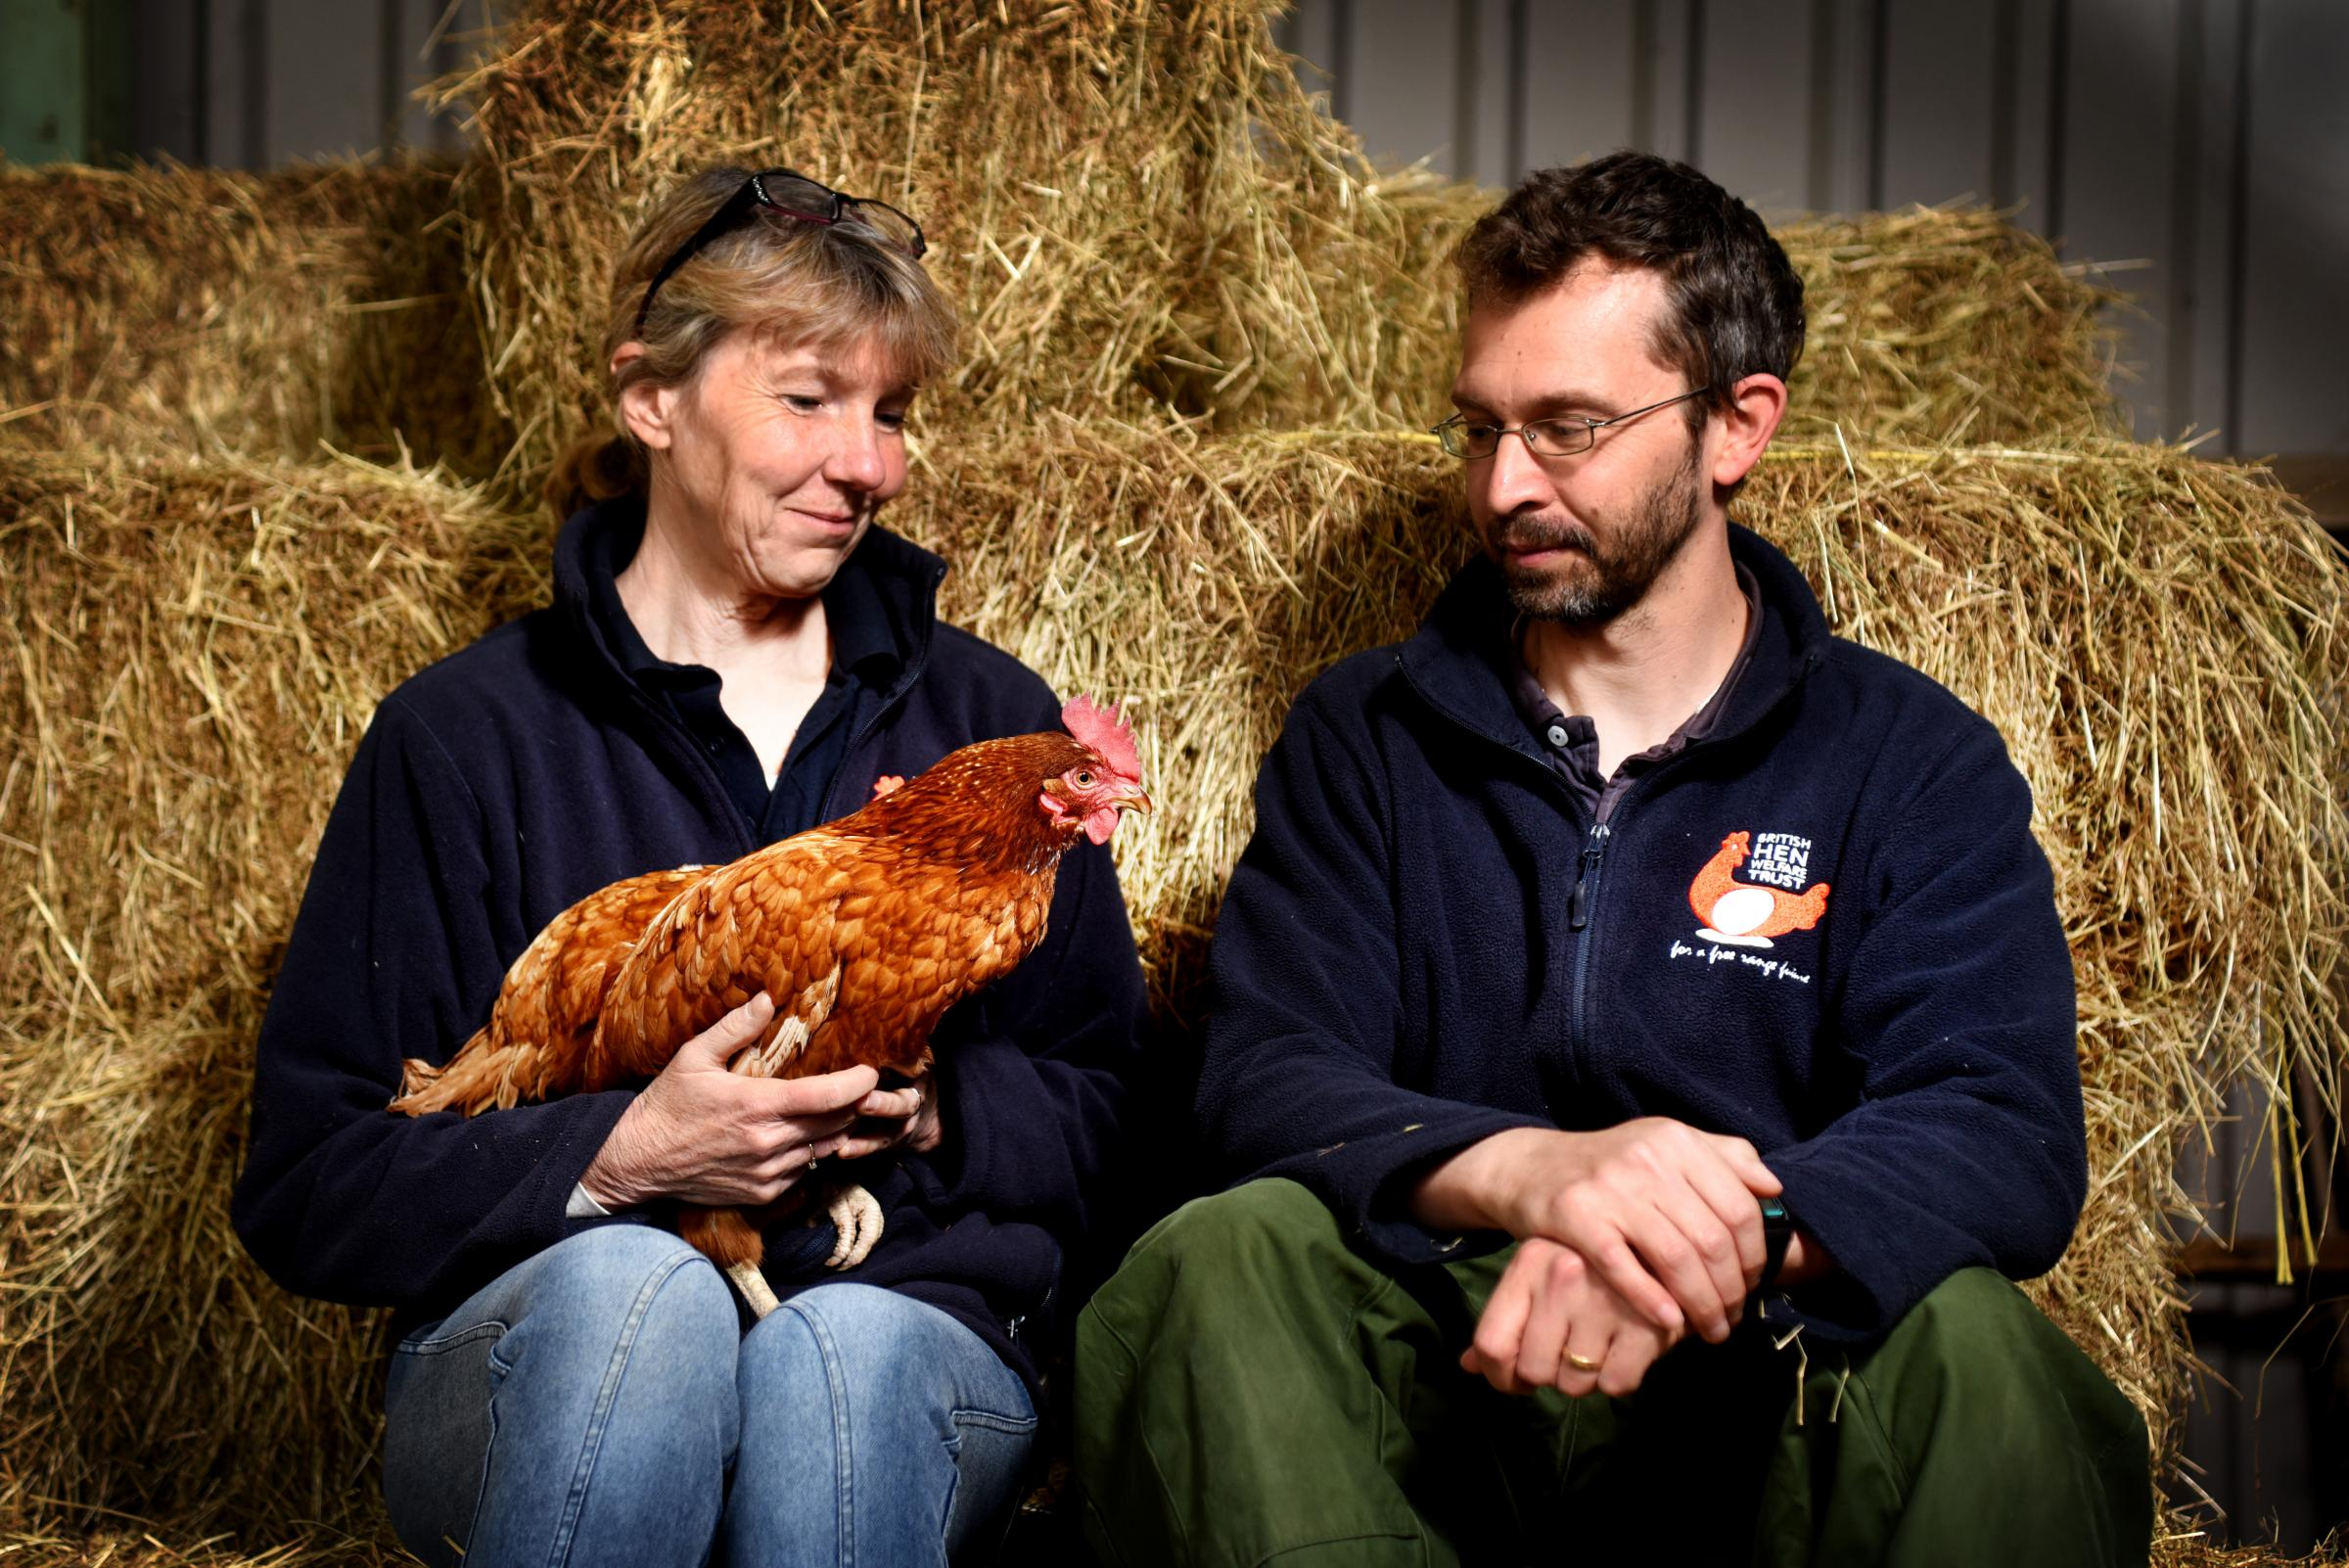 LANDMARK: Pictured at Willow Farm are volunteers Alison Vaughan and David Roberts. Picture by Richard Cave